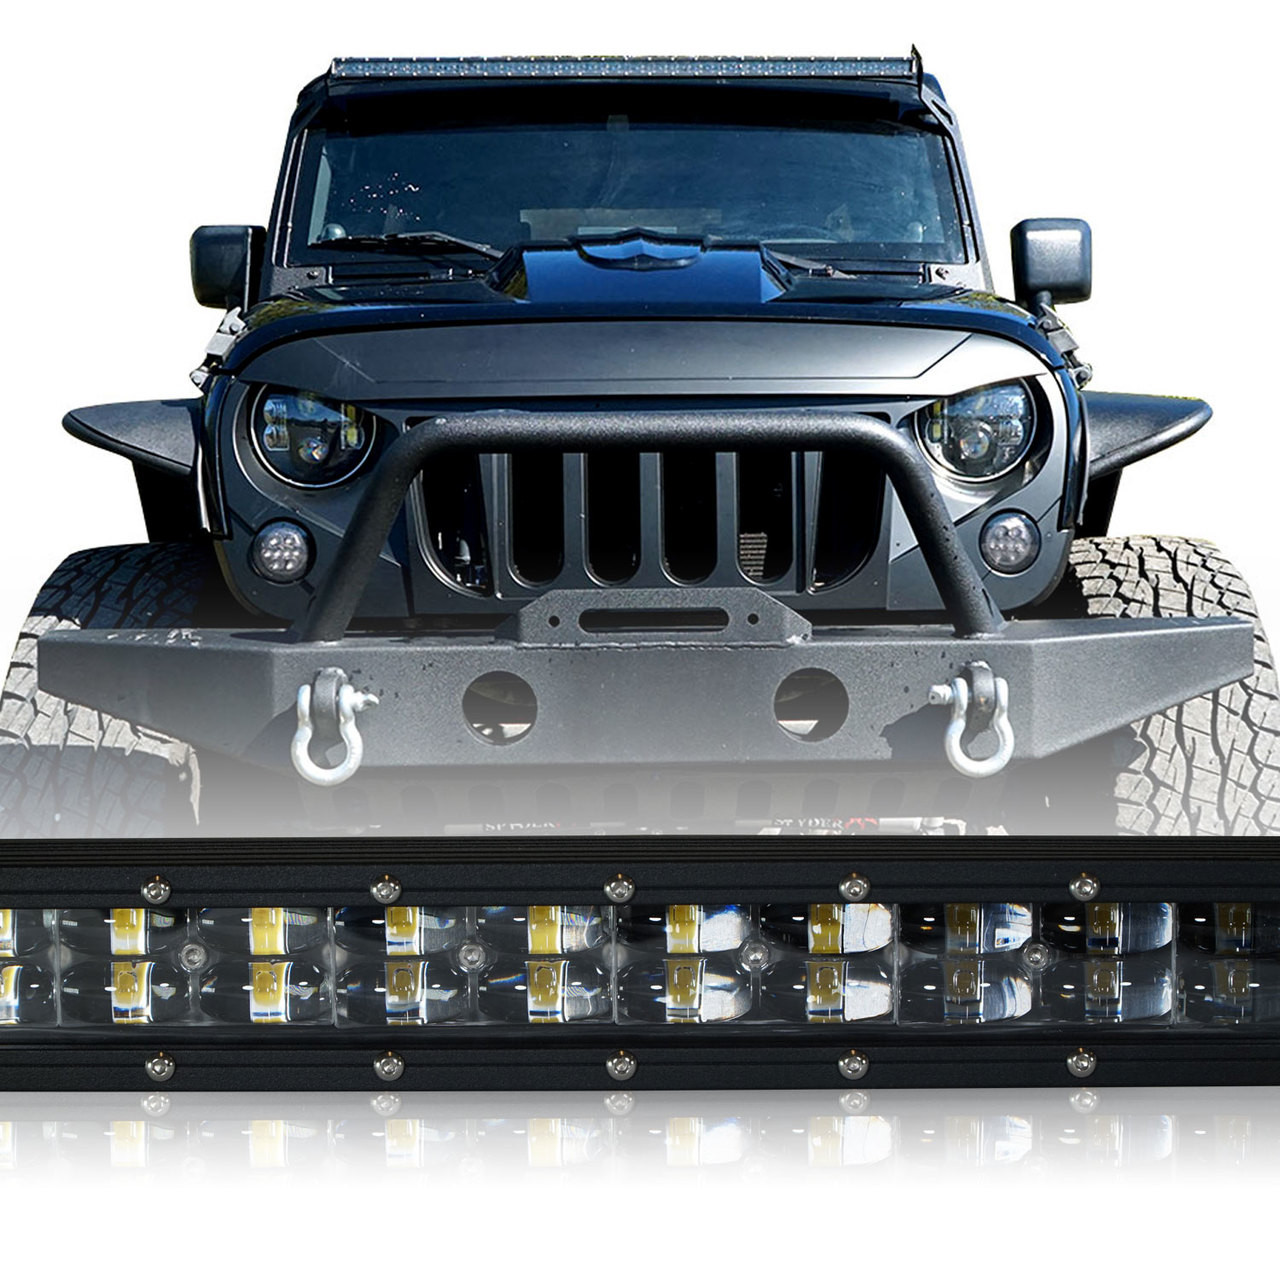 Led light bar 288w 50 inches bracket wiring harness kit for wrangler led light bar 288w 50 inches bracket wiring harness kit for wrangler jk 2007 2017 aloadofball Gallery